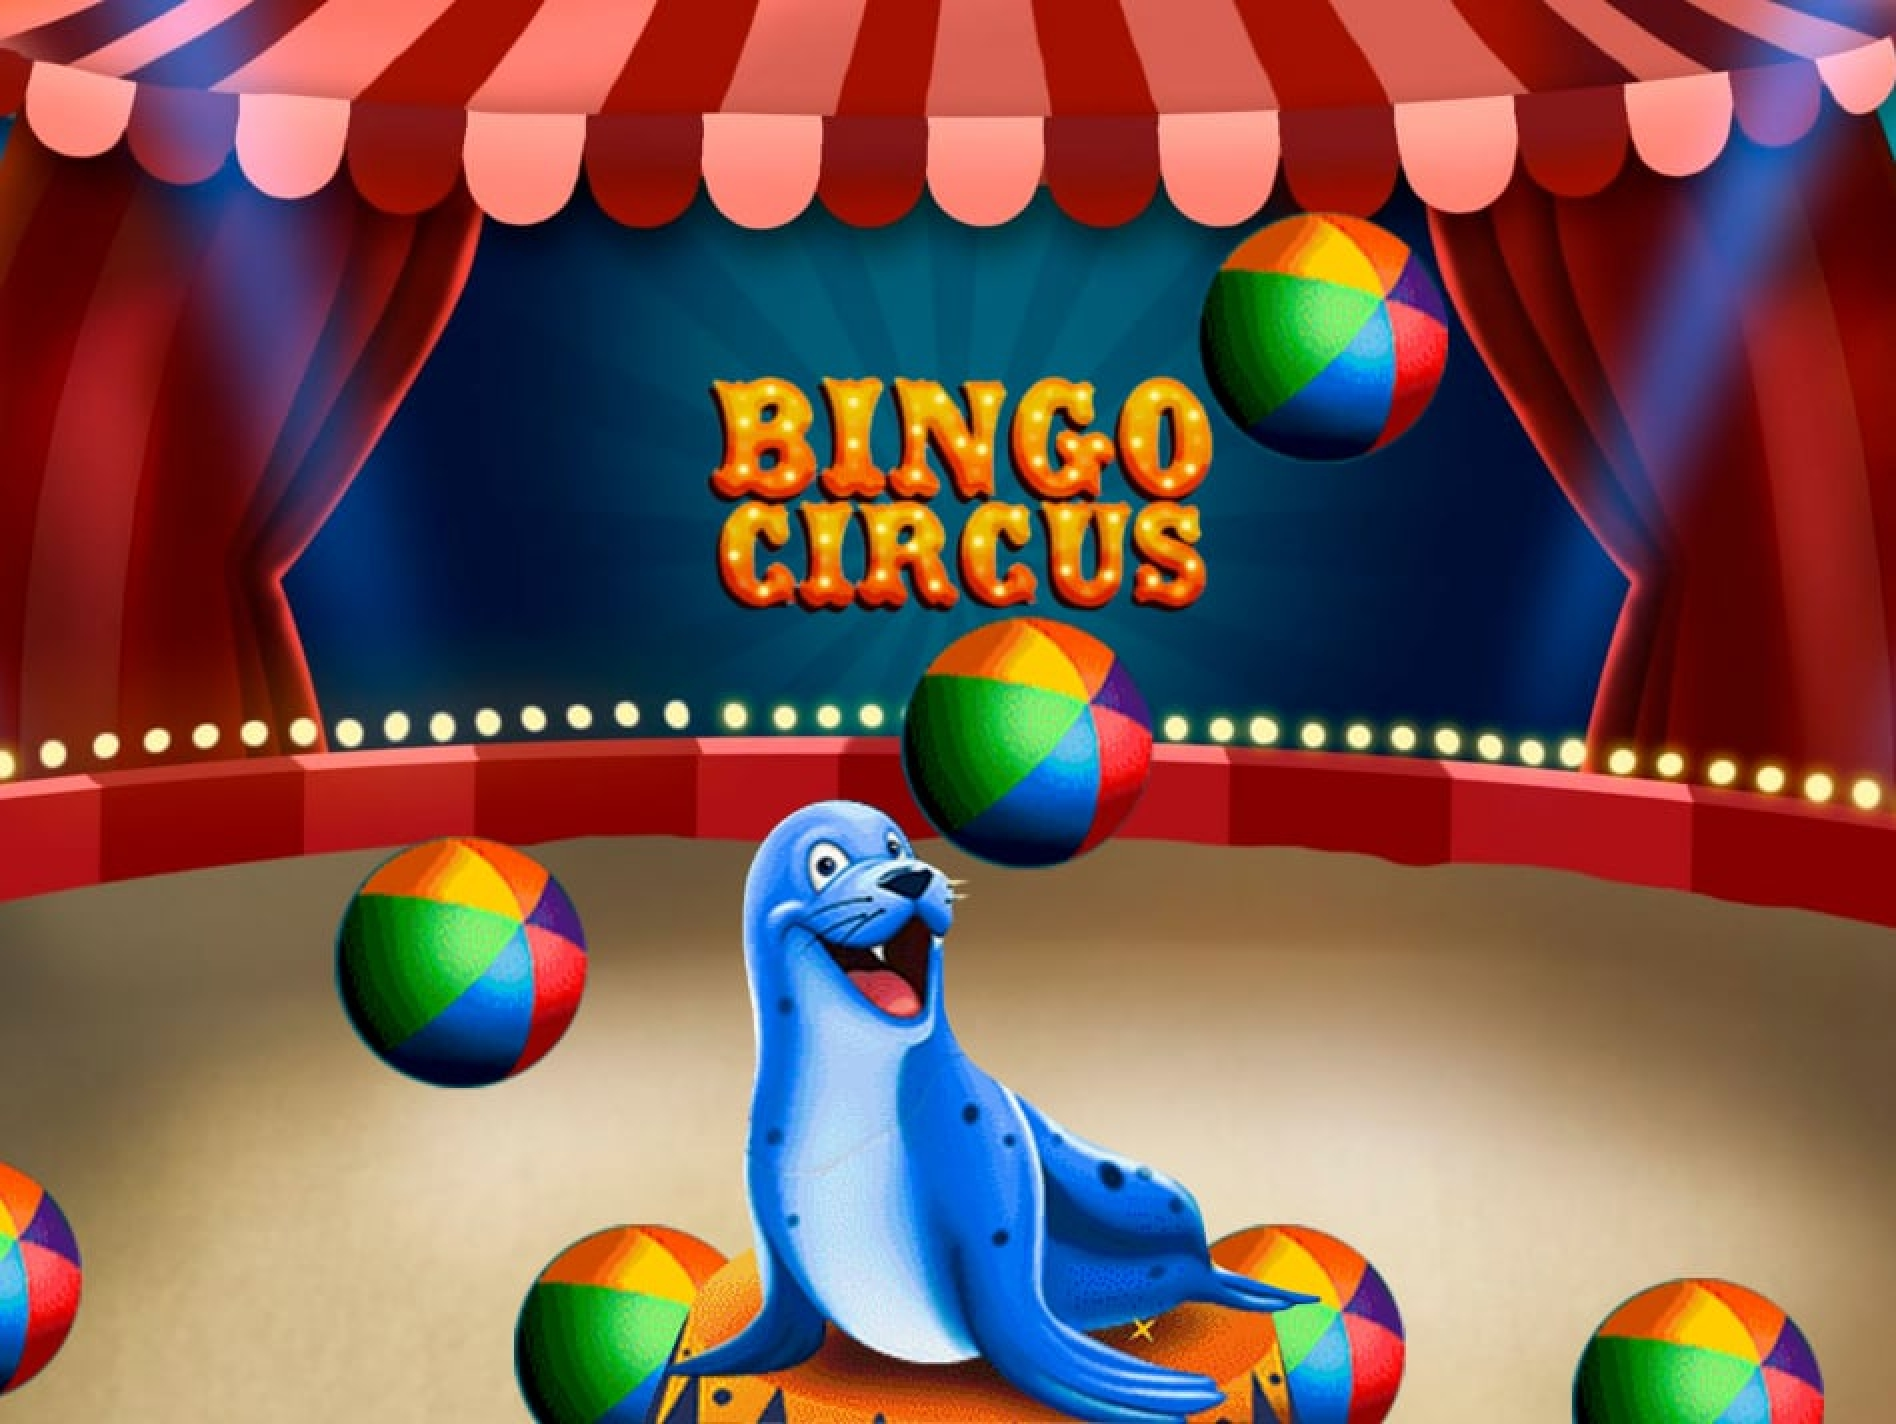 The Bingo Circus (Caleta Gaming) Online Slot Demo Game by Caleta Gaming